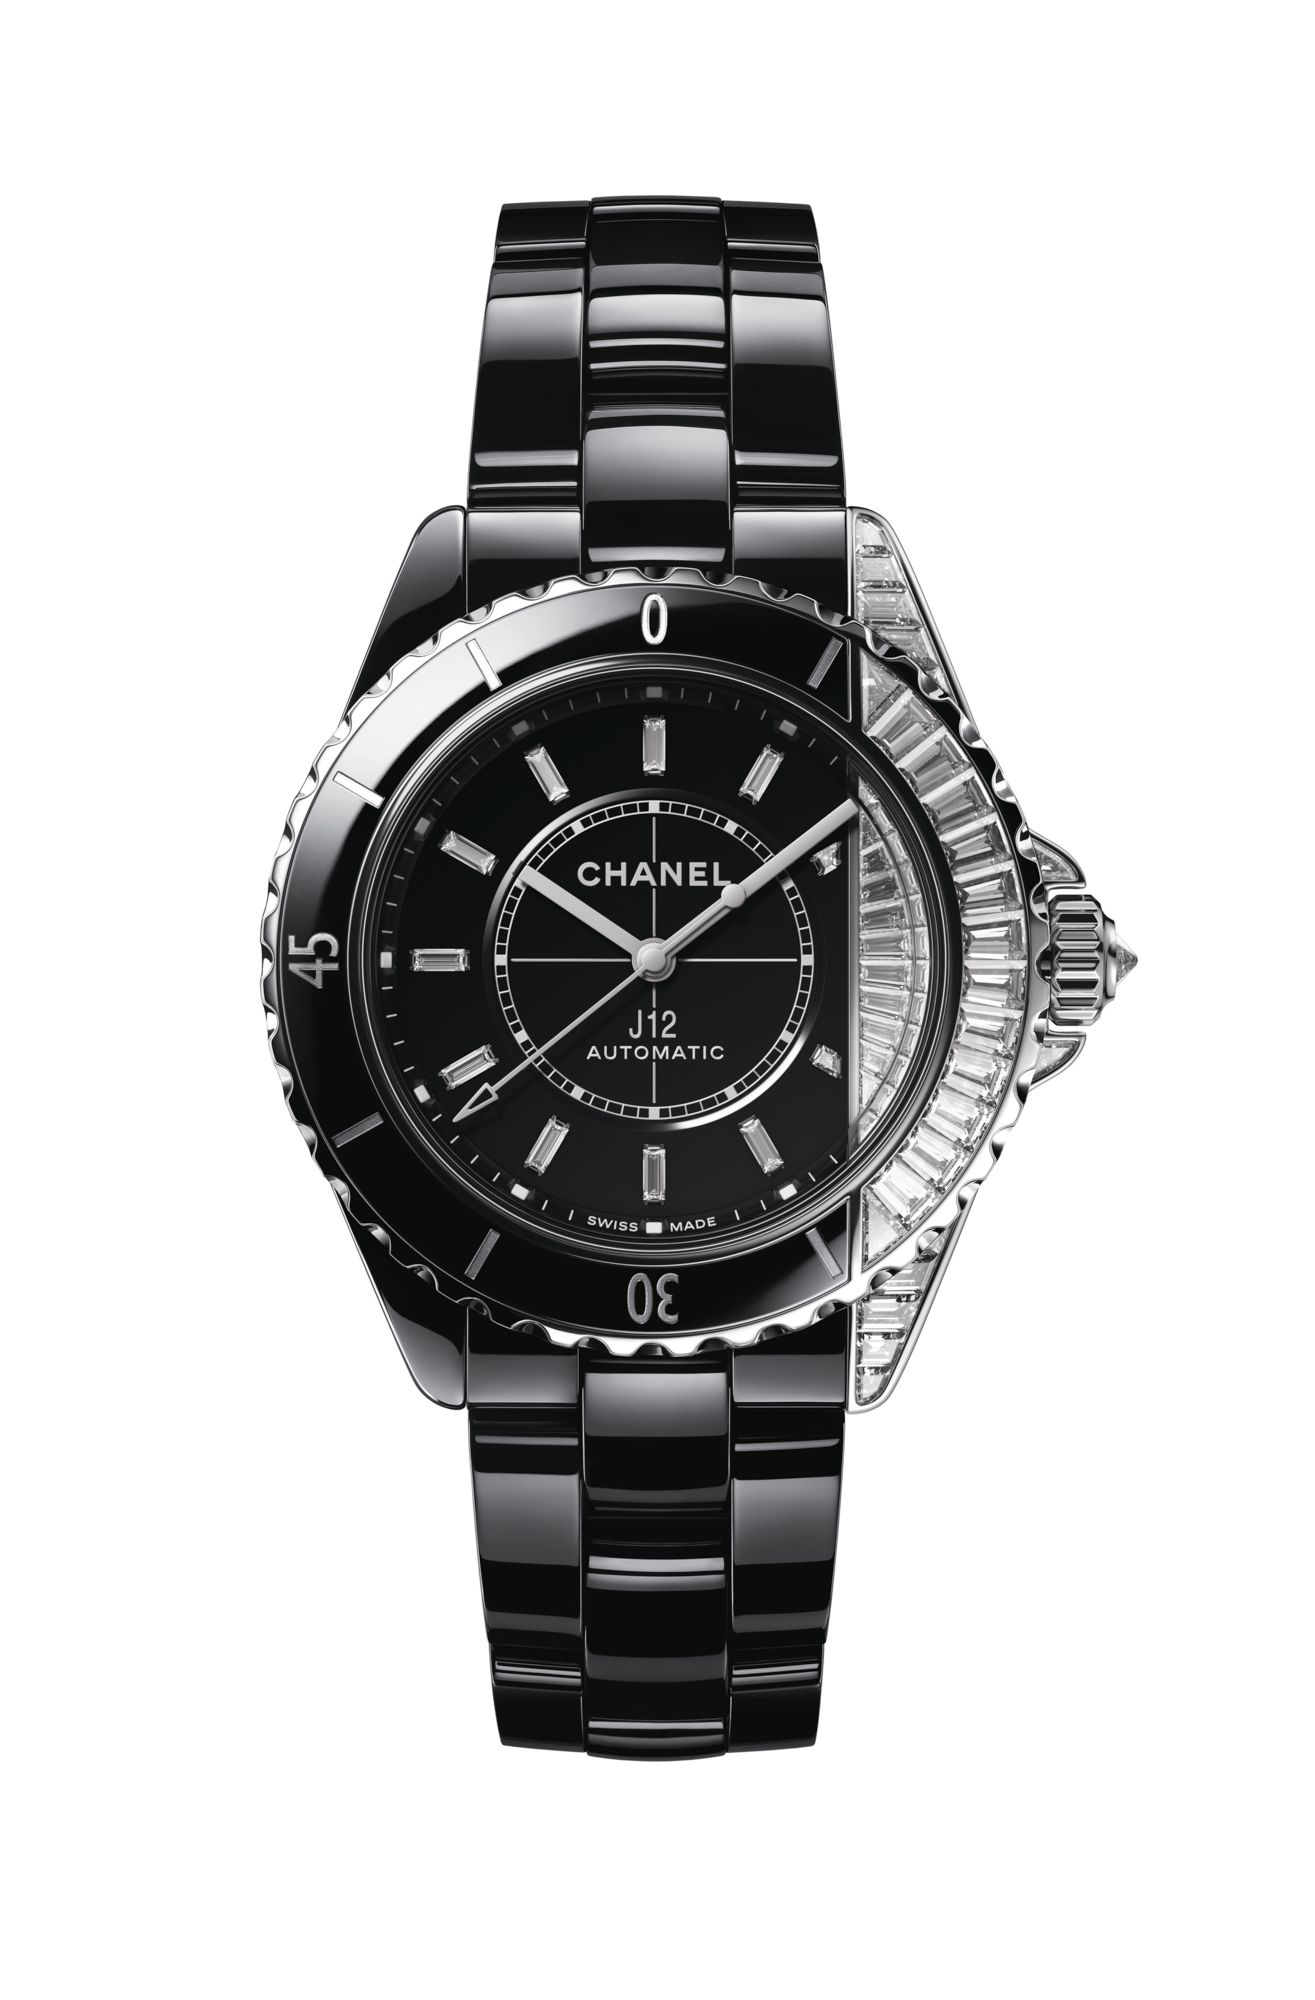 Introducing The Luxurious Chanel J12 Paradoxe Diamonds